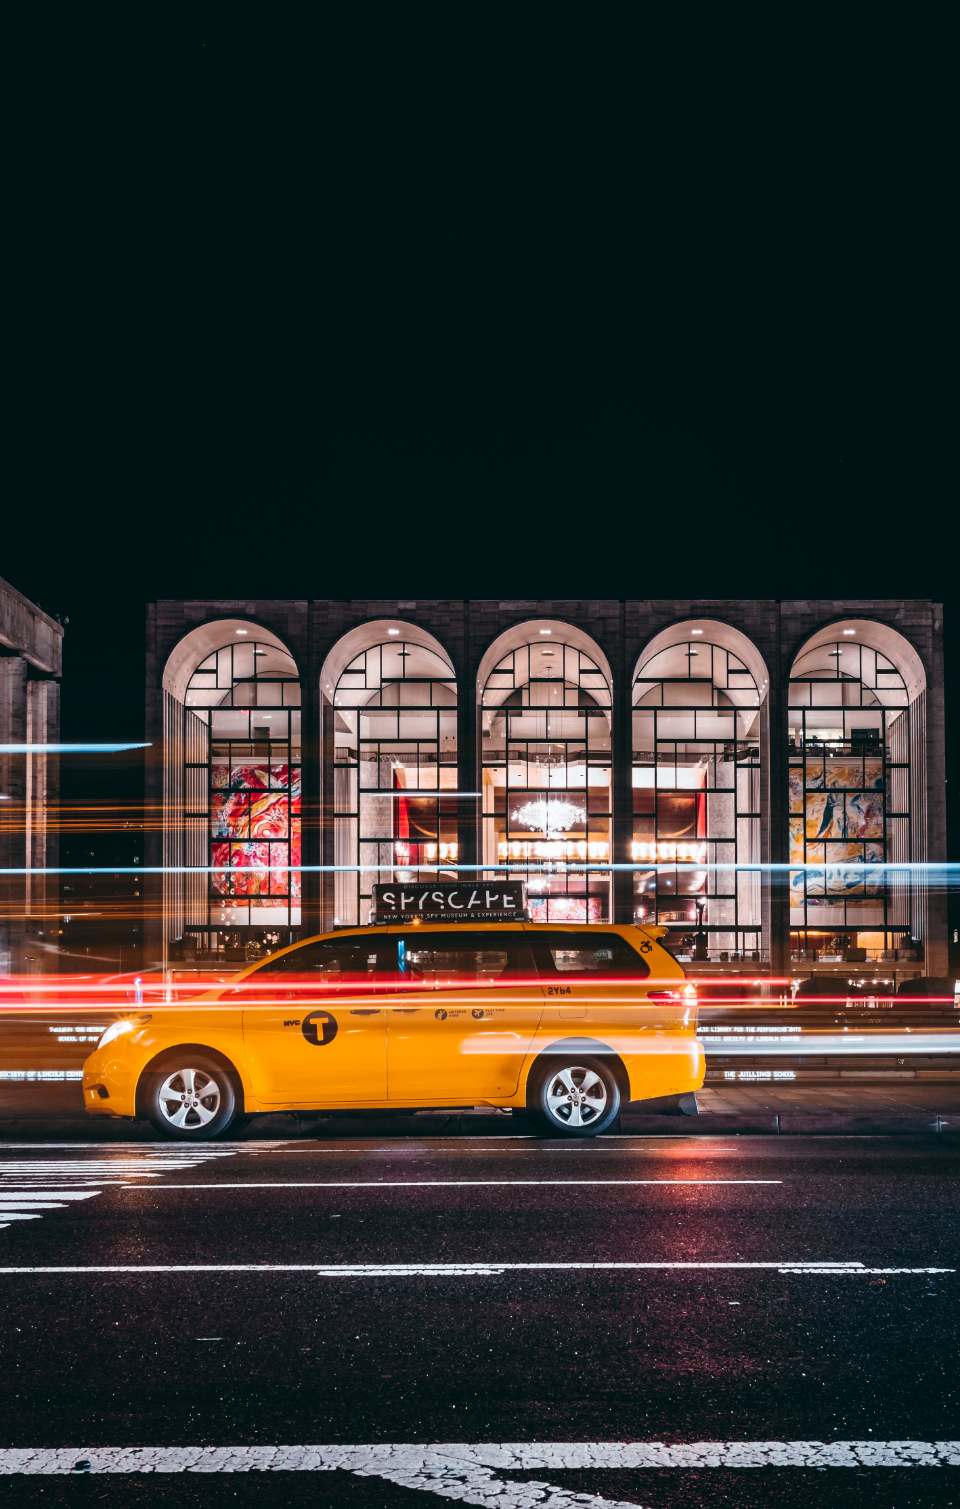 Free stock photo of taxi city